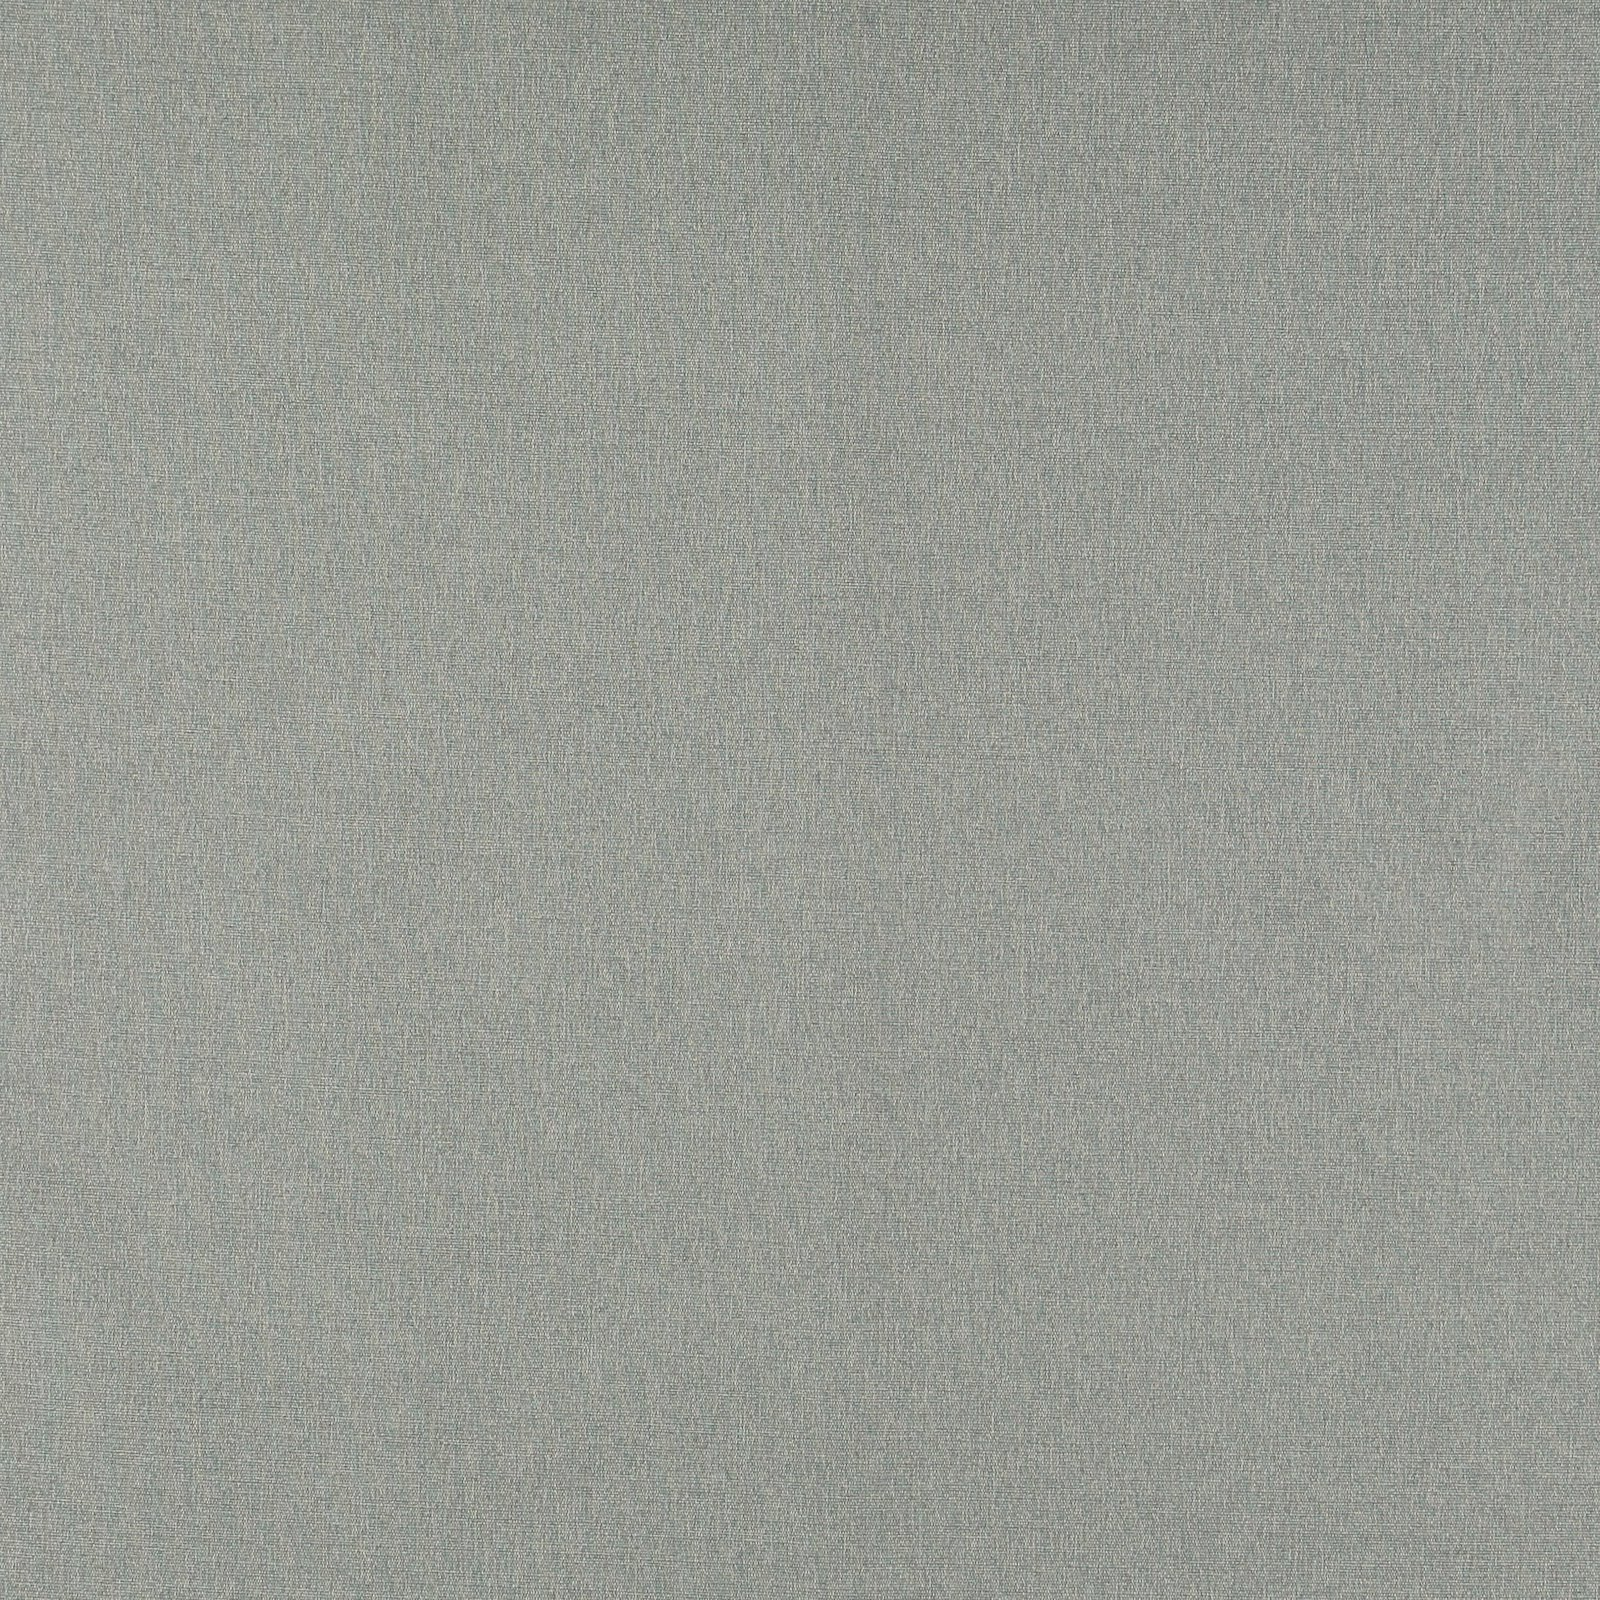 Upholstery fabric grey w/white backing 824091_pack_sp